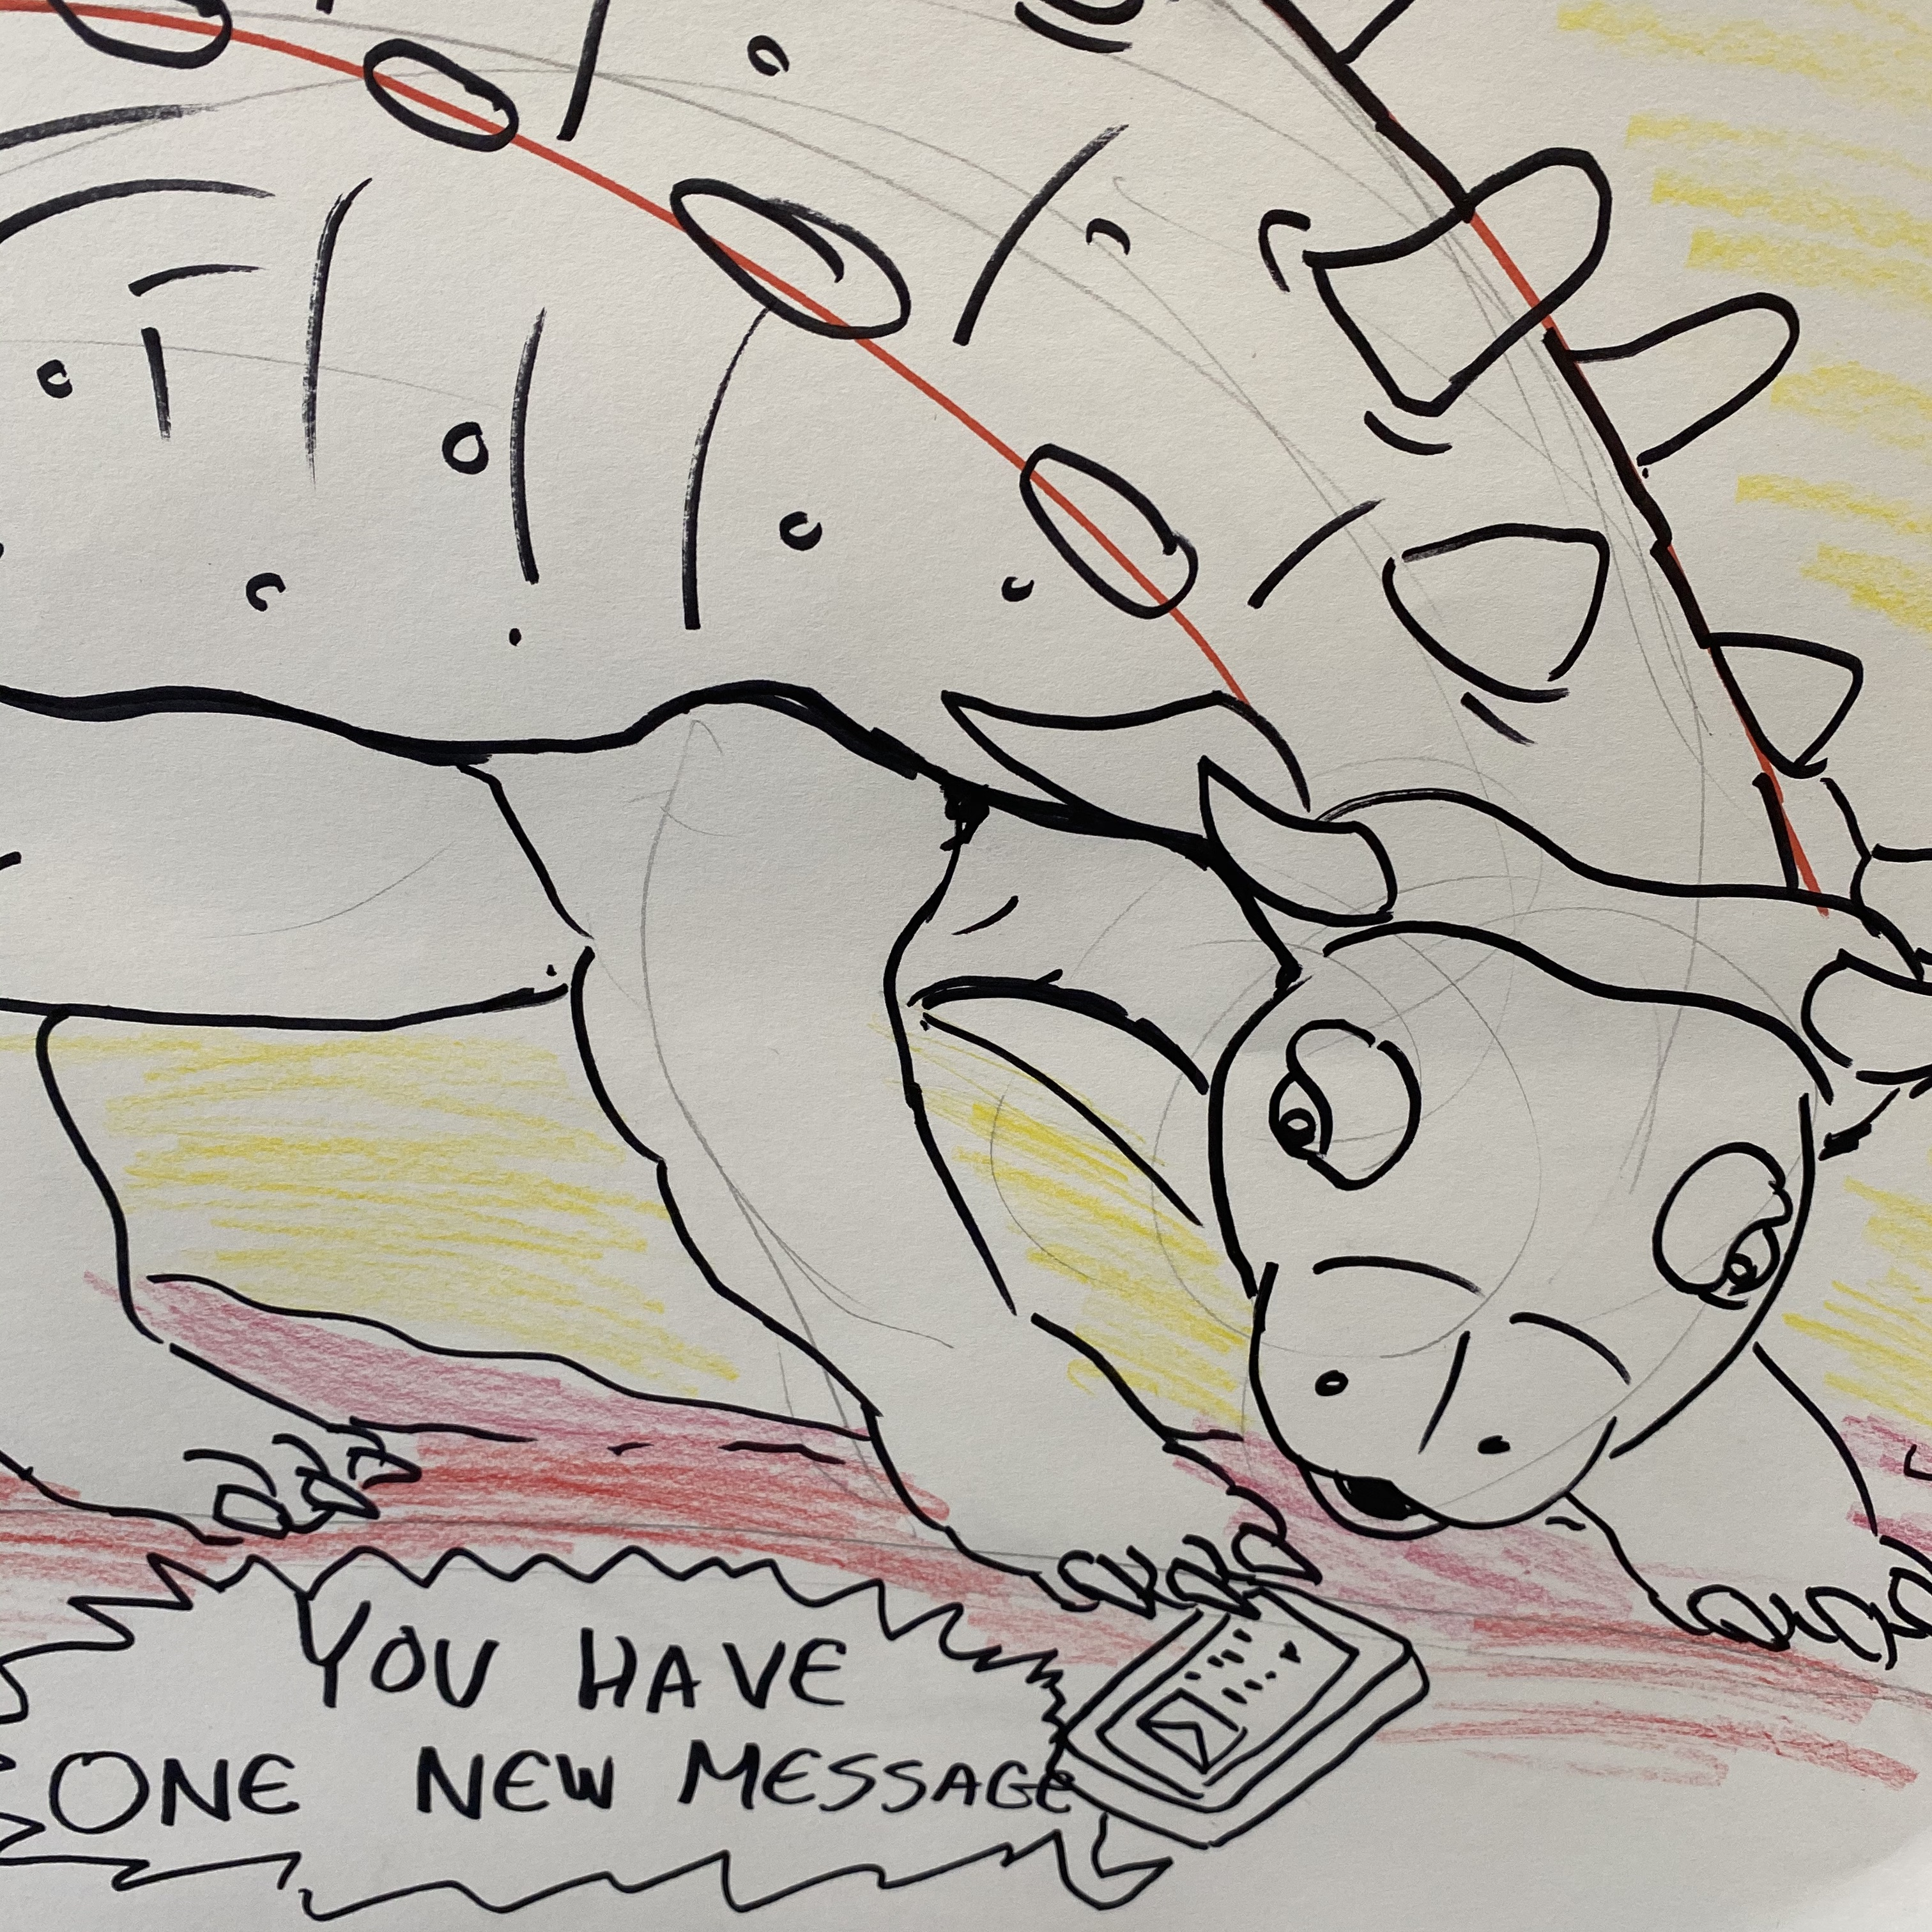 Cartoon | Dinosaurs and Megafauna | 8-12 years